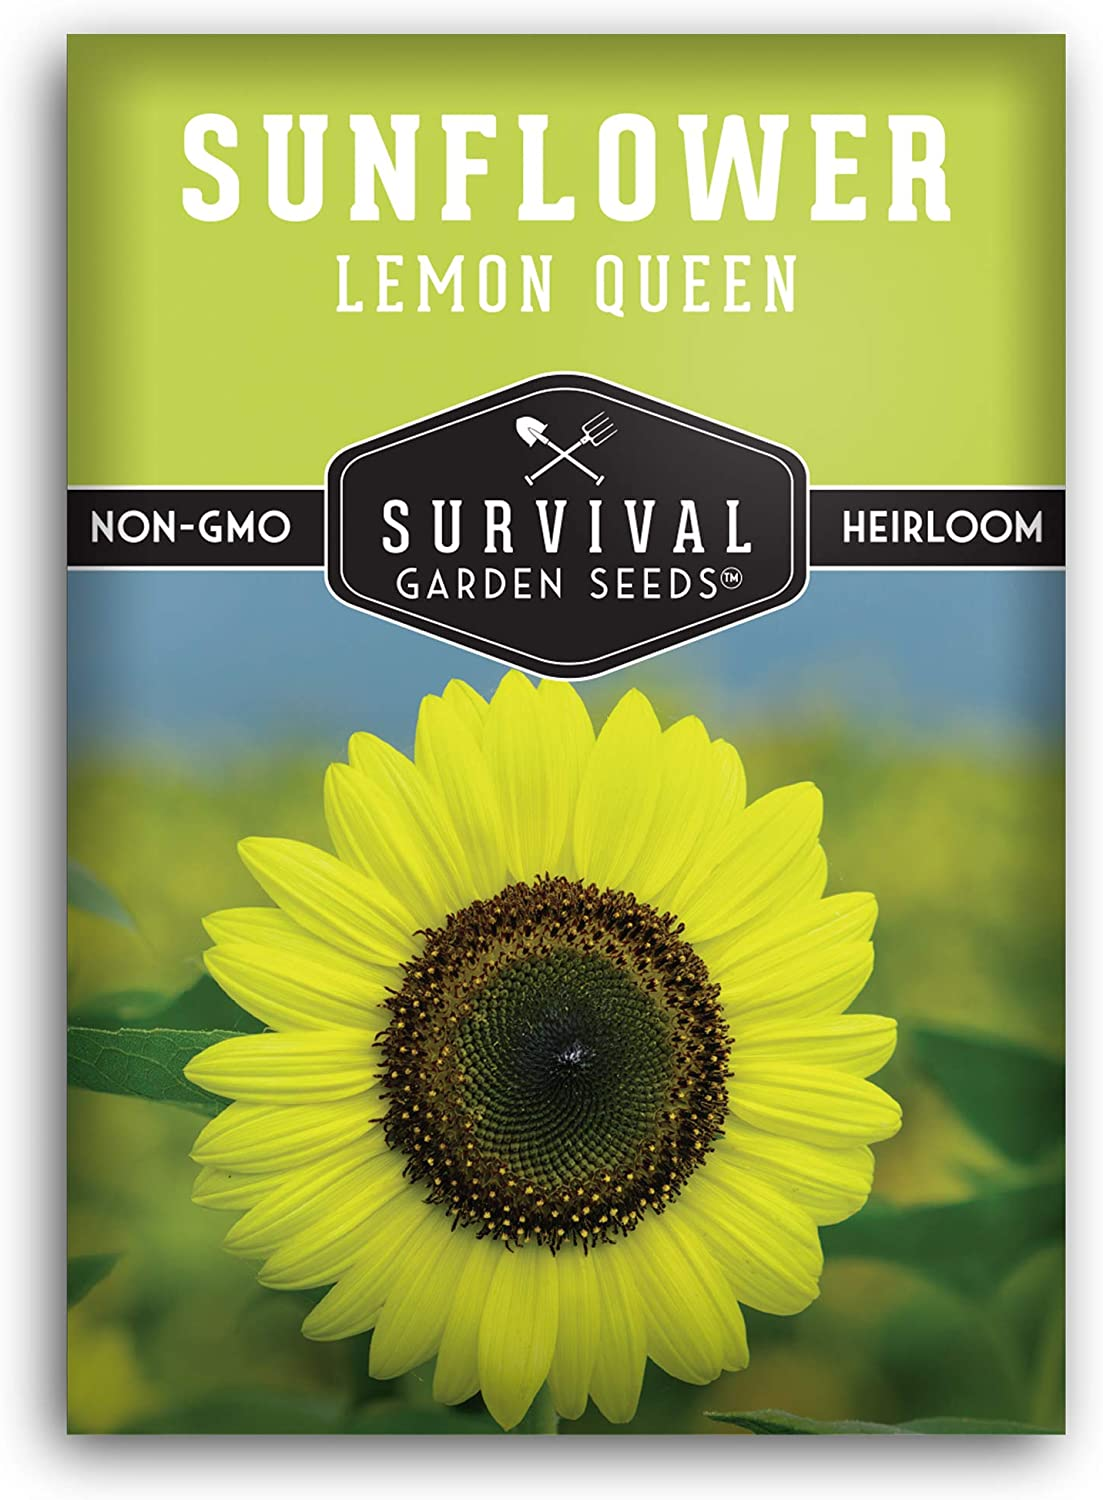 Survival Garden Seeds - Lemon Queen Sunflower Seed for Planting - Packet with Instructions to Plant and Grow in Your Home Vegetable Garden - Non-GMO Heirloom Variety